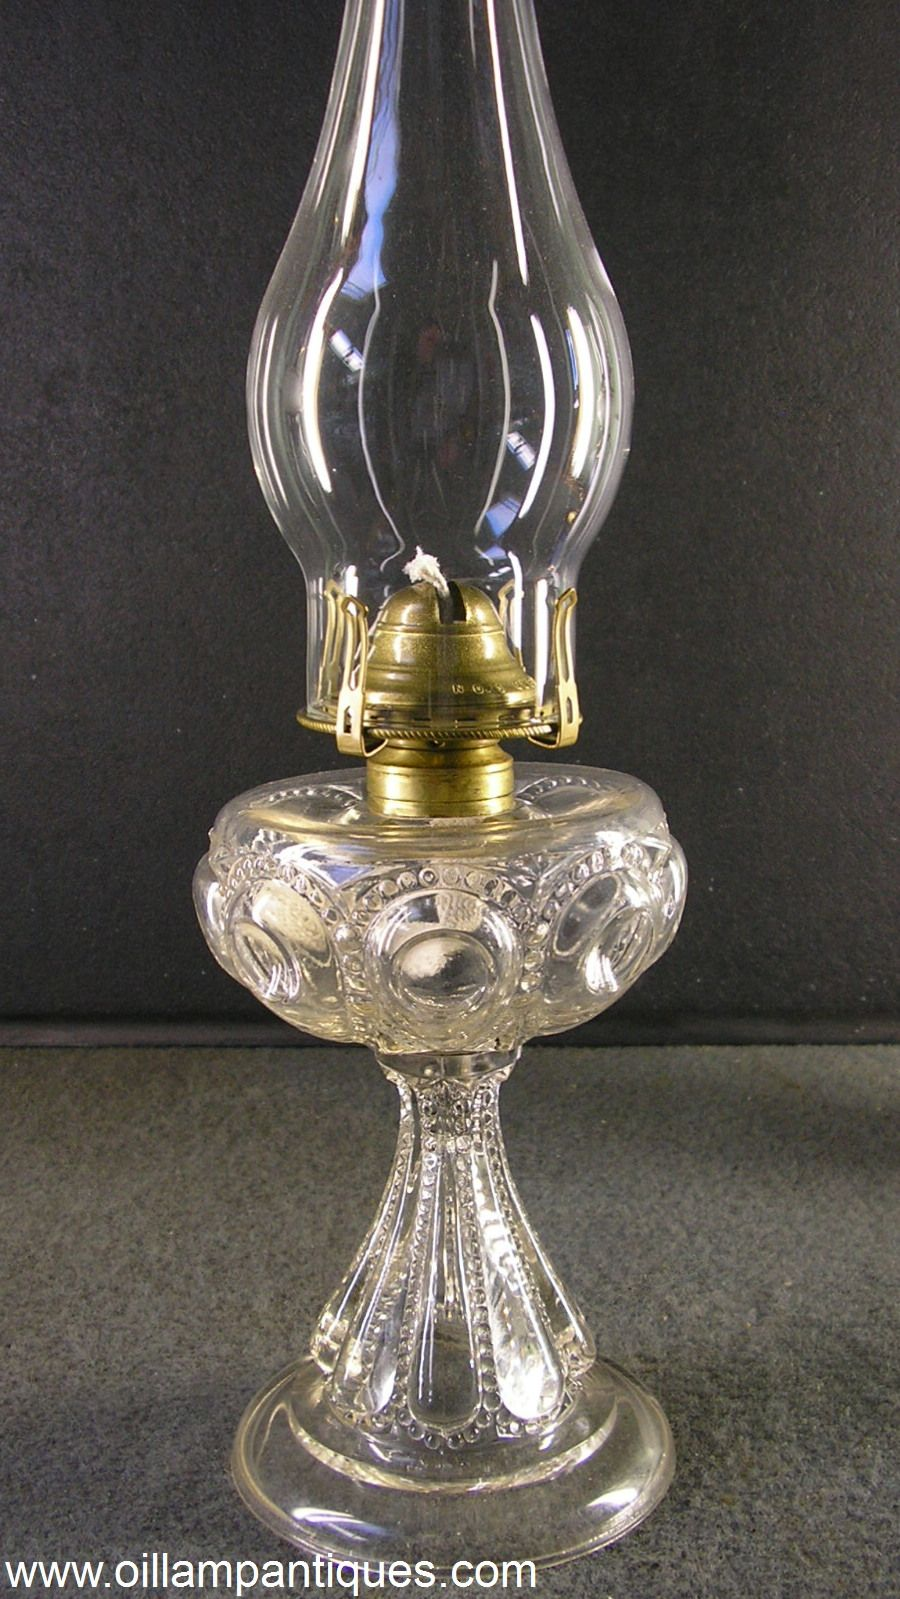 The Pattern Of This Lovely Little Antique Oil Lamp Is